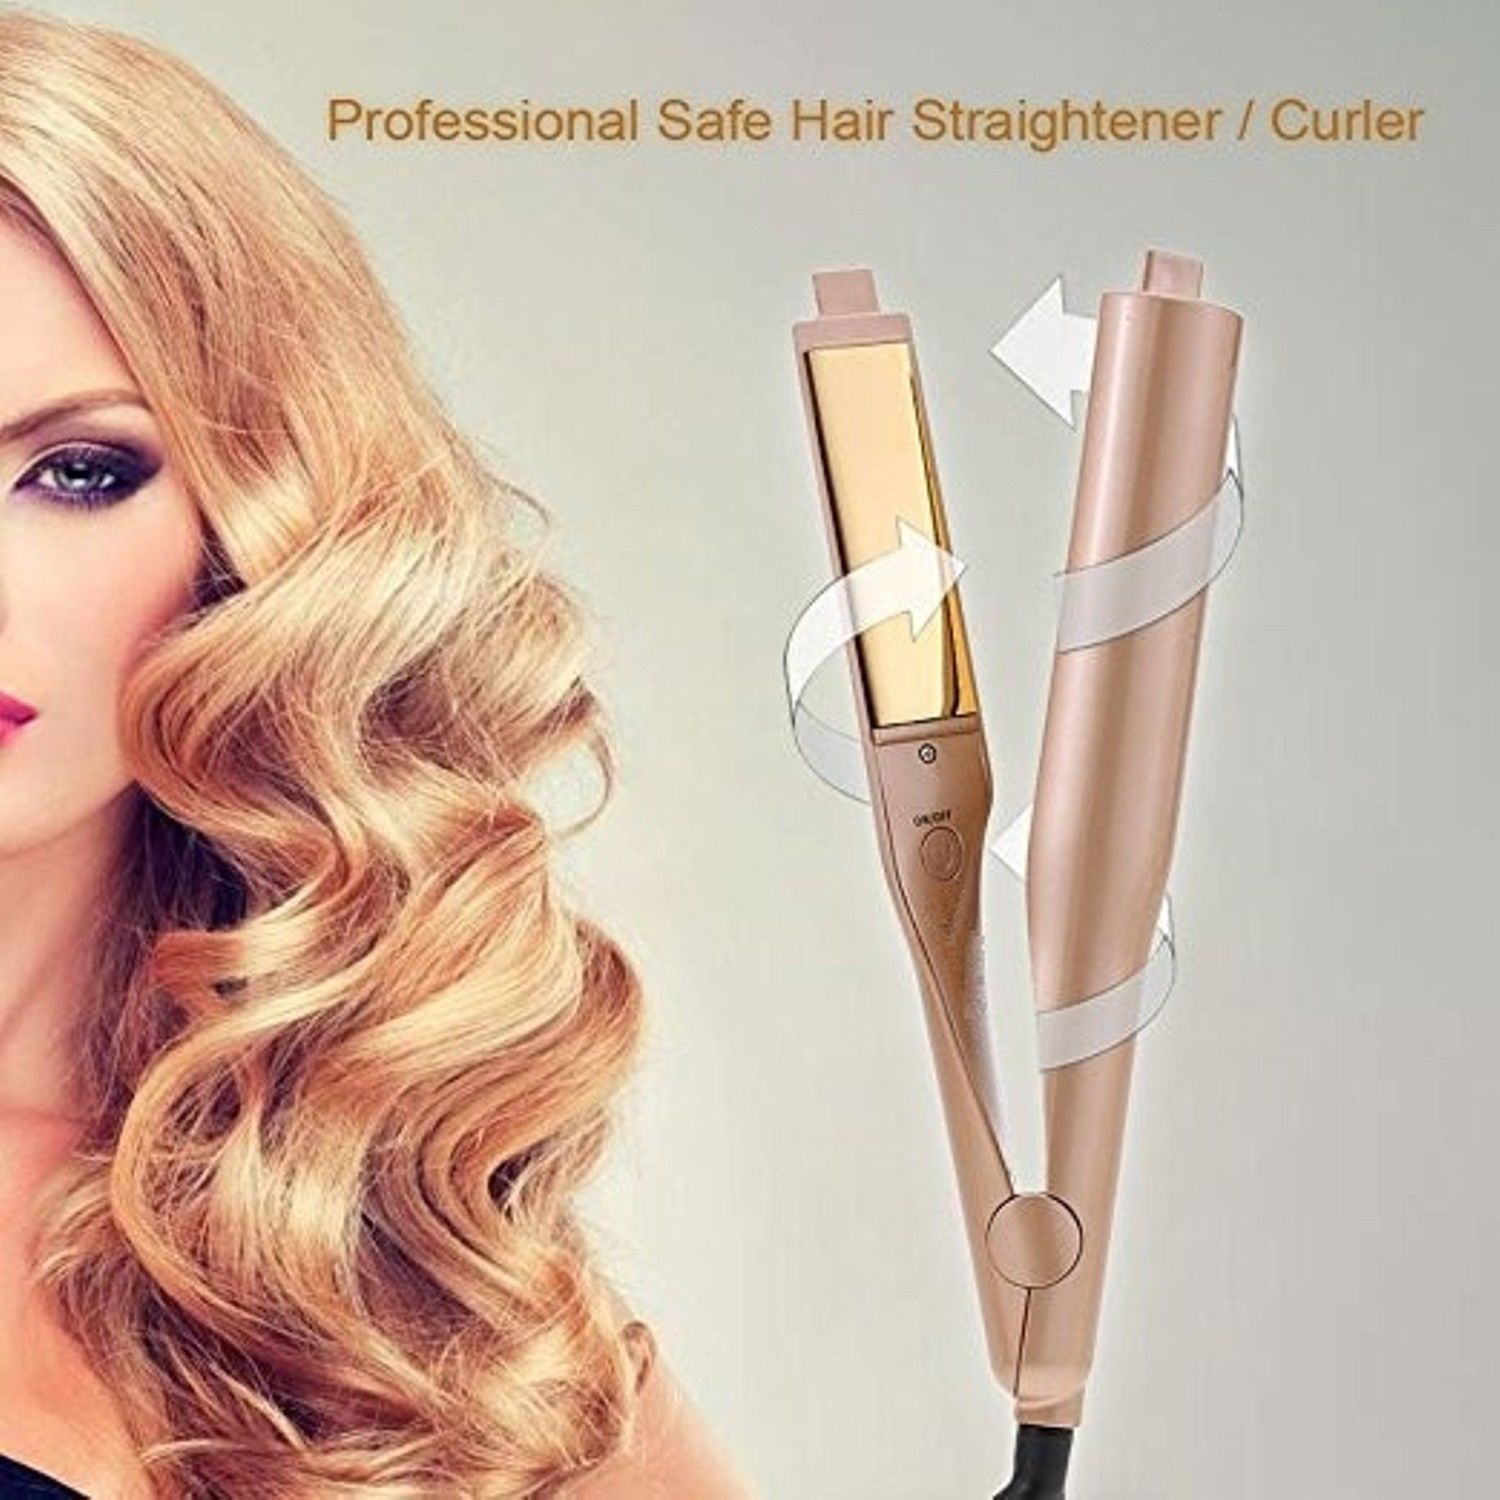 Professional 2in1 Straightener Irons Hair Curler Flat Iron Straightening Styling Tools Iron Curling Ceramic Wave iron 4 in 1 hair flat iron ceramic fast heating hair straightener straightening corn wide wave plate curling hair curler styling tool